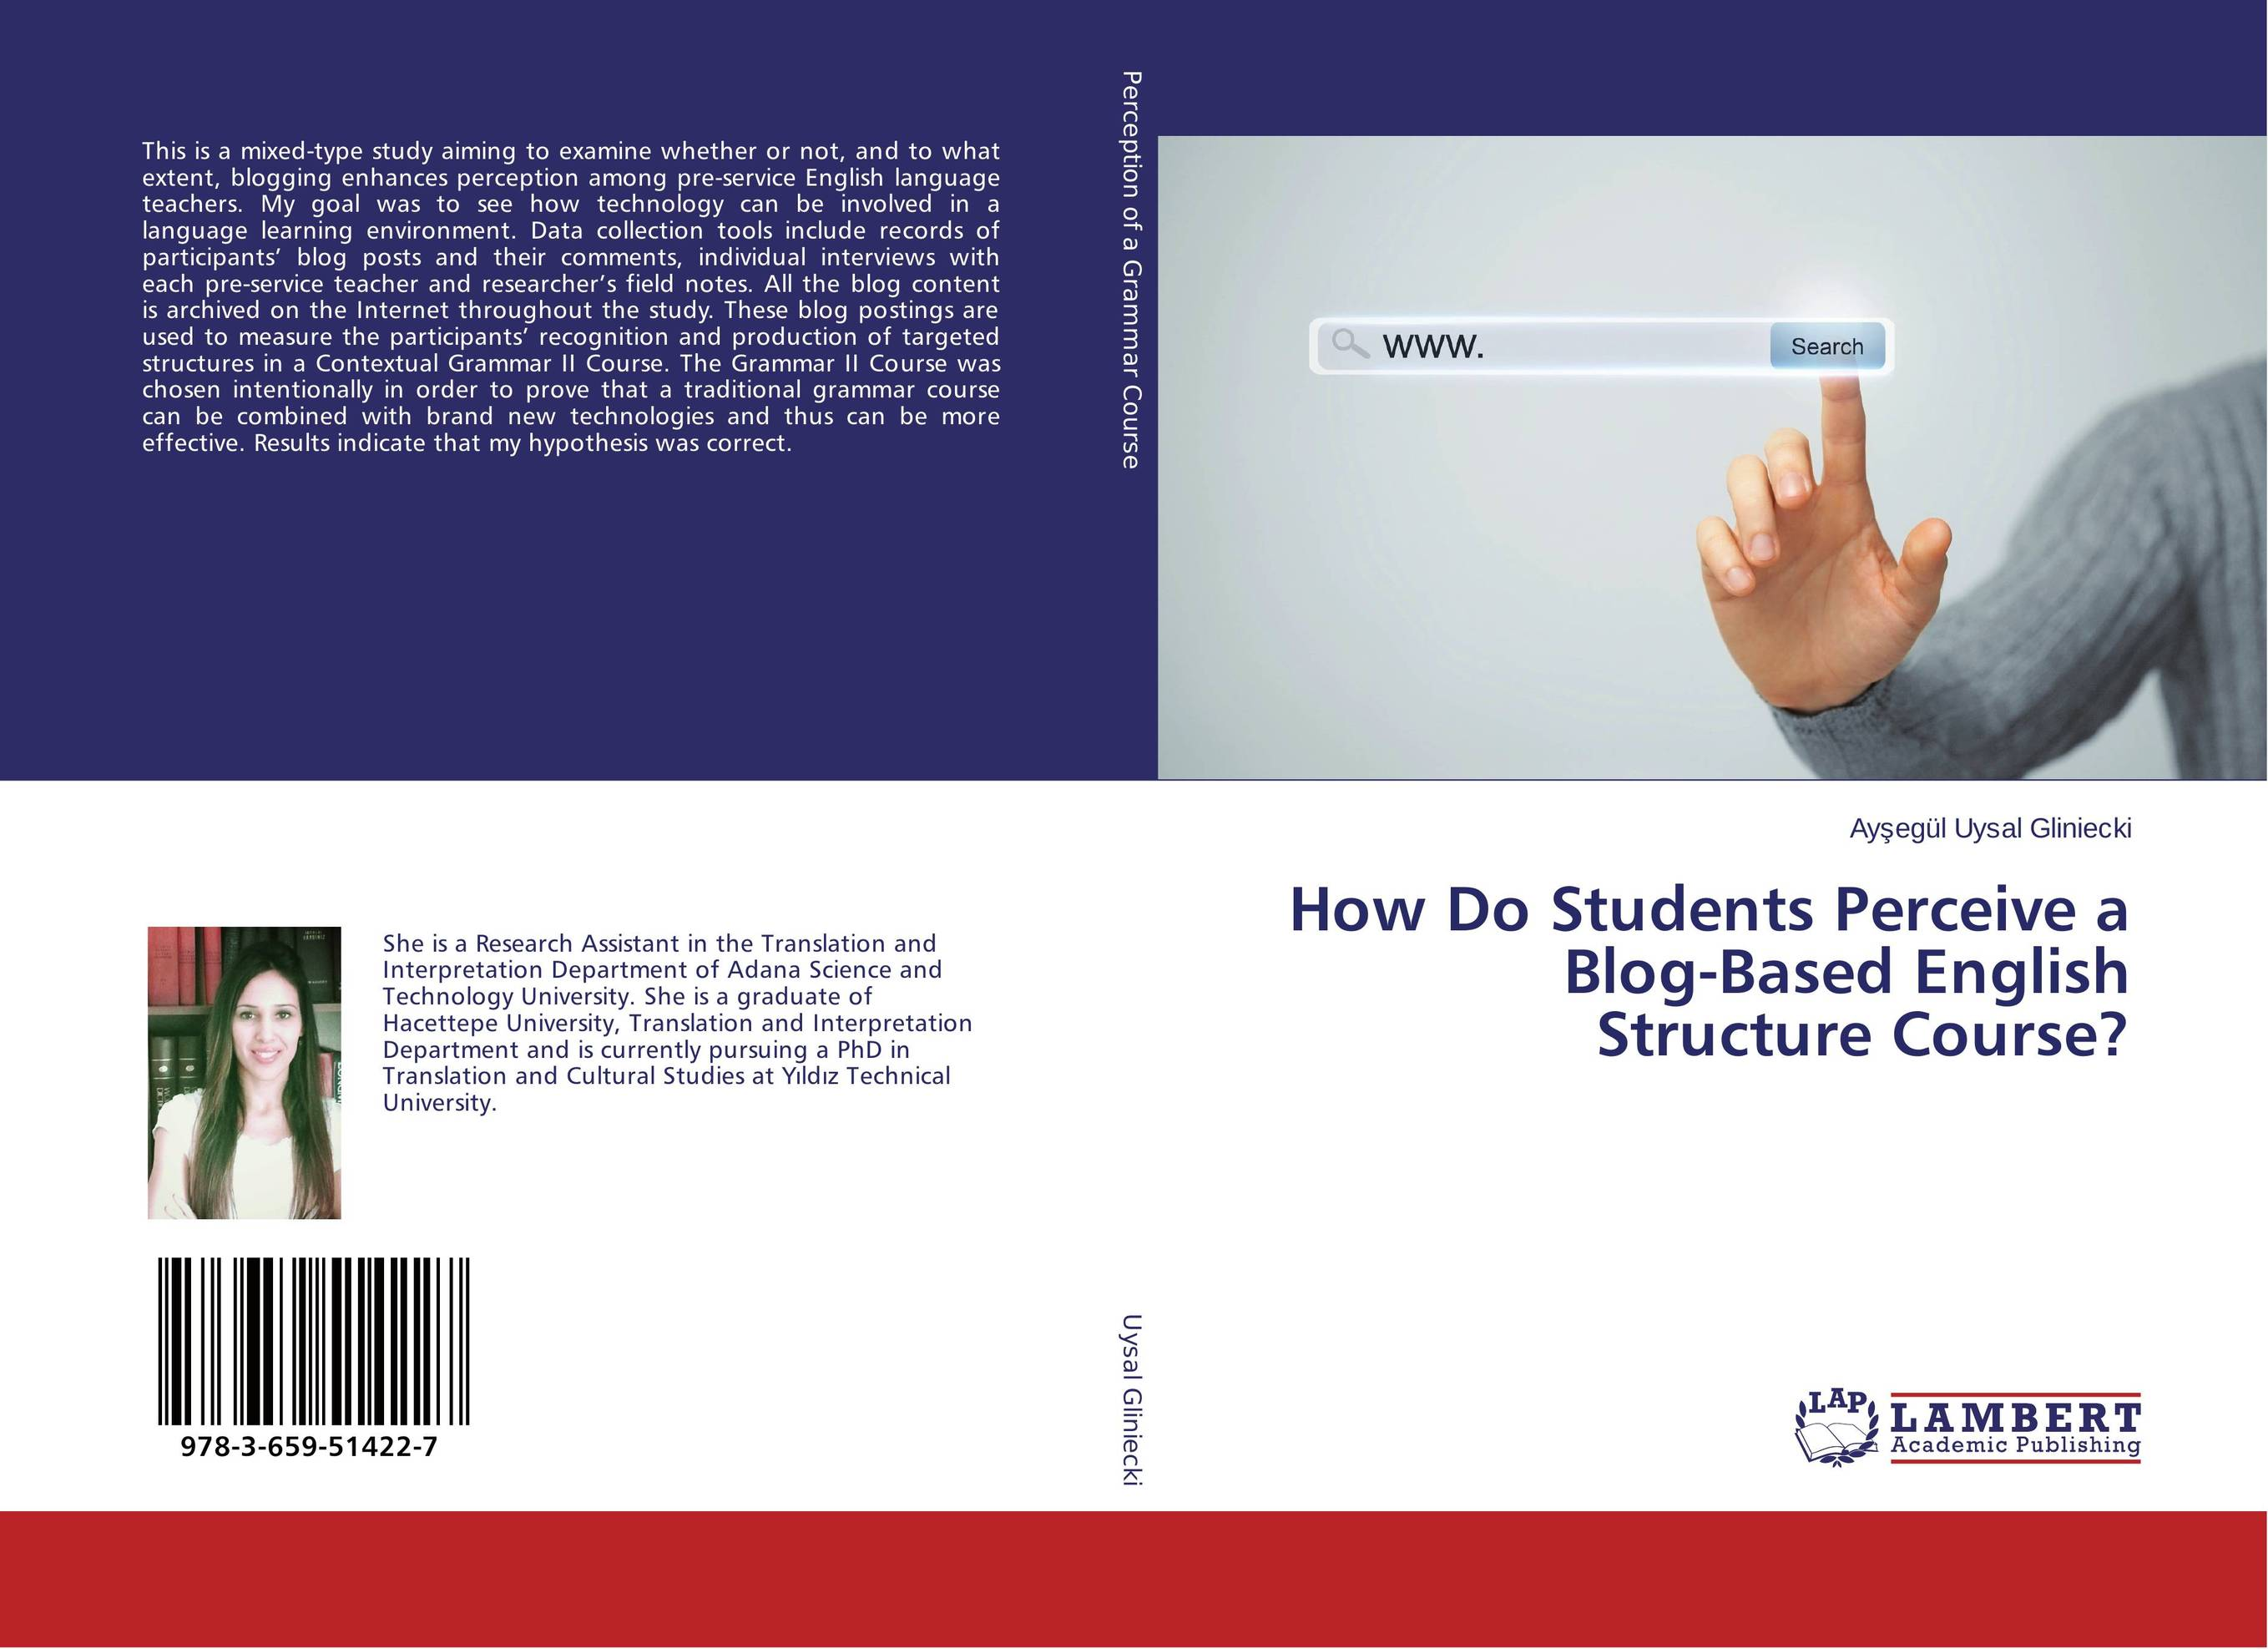 How Do Students Perceive a Blog-Based English Structure Course? blog theory